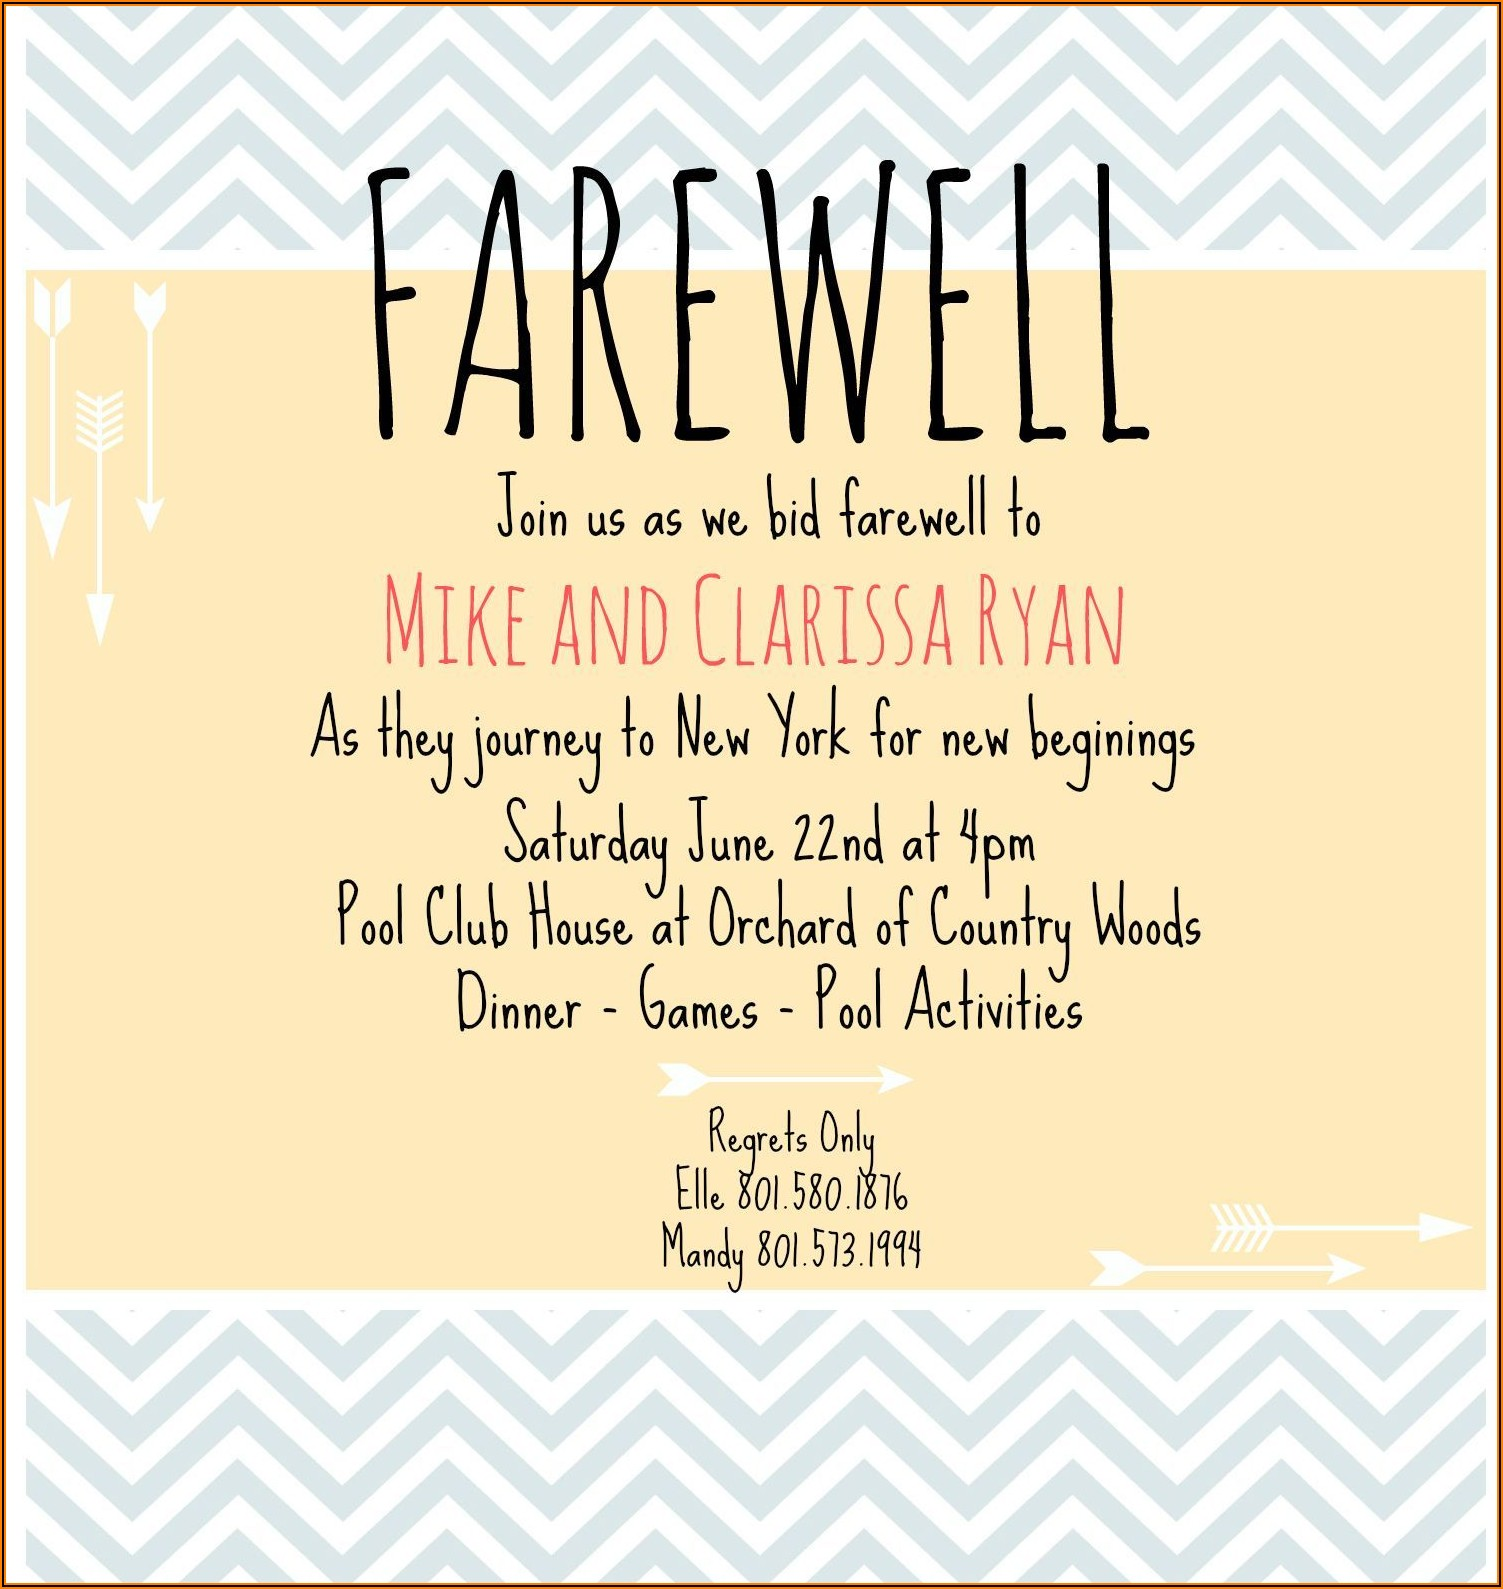 My Farewell Lunch Invitation Email To Colleagues